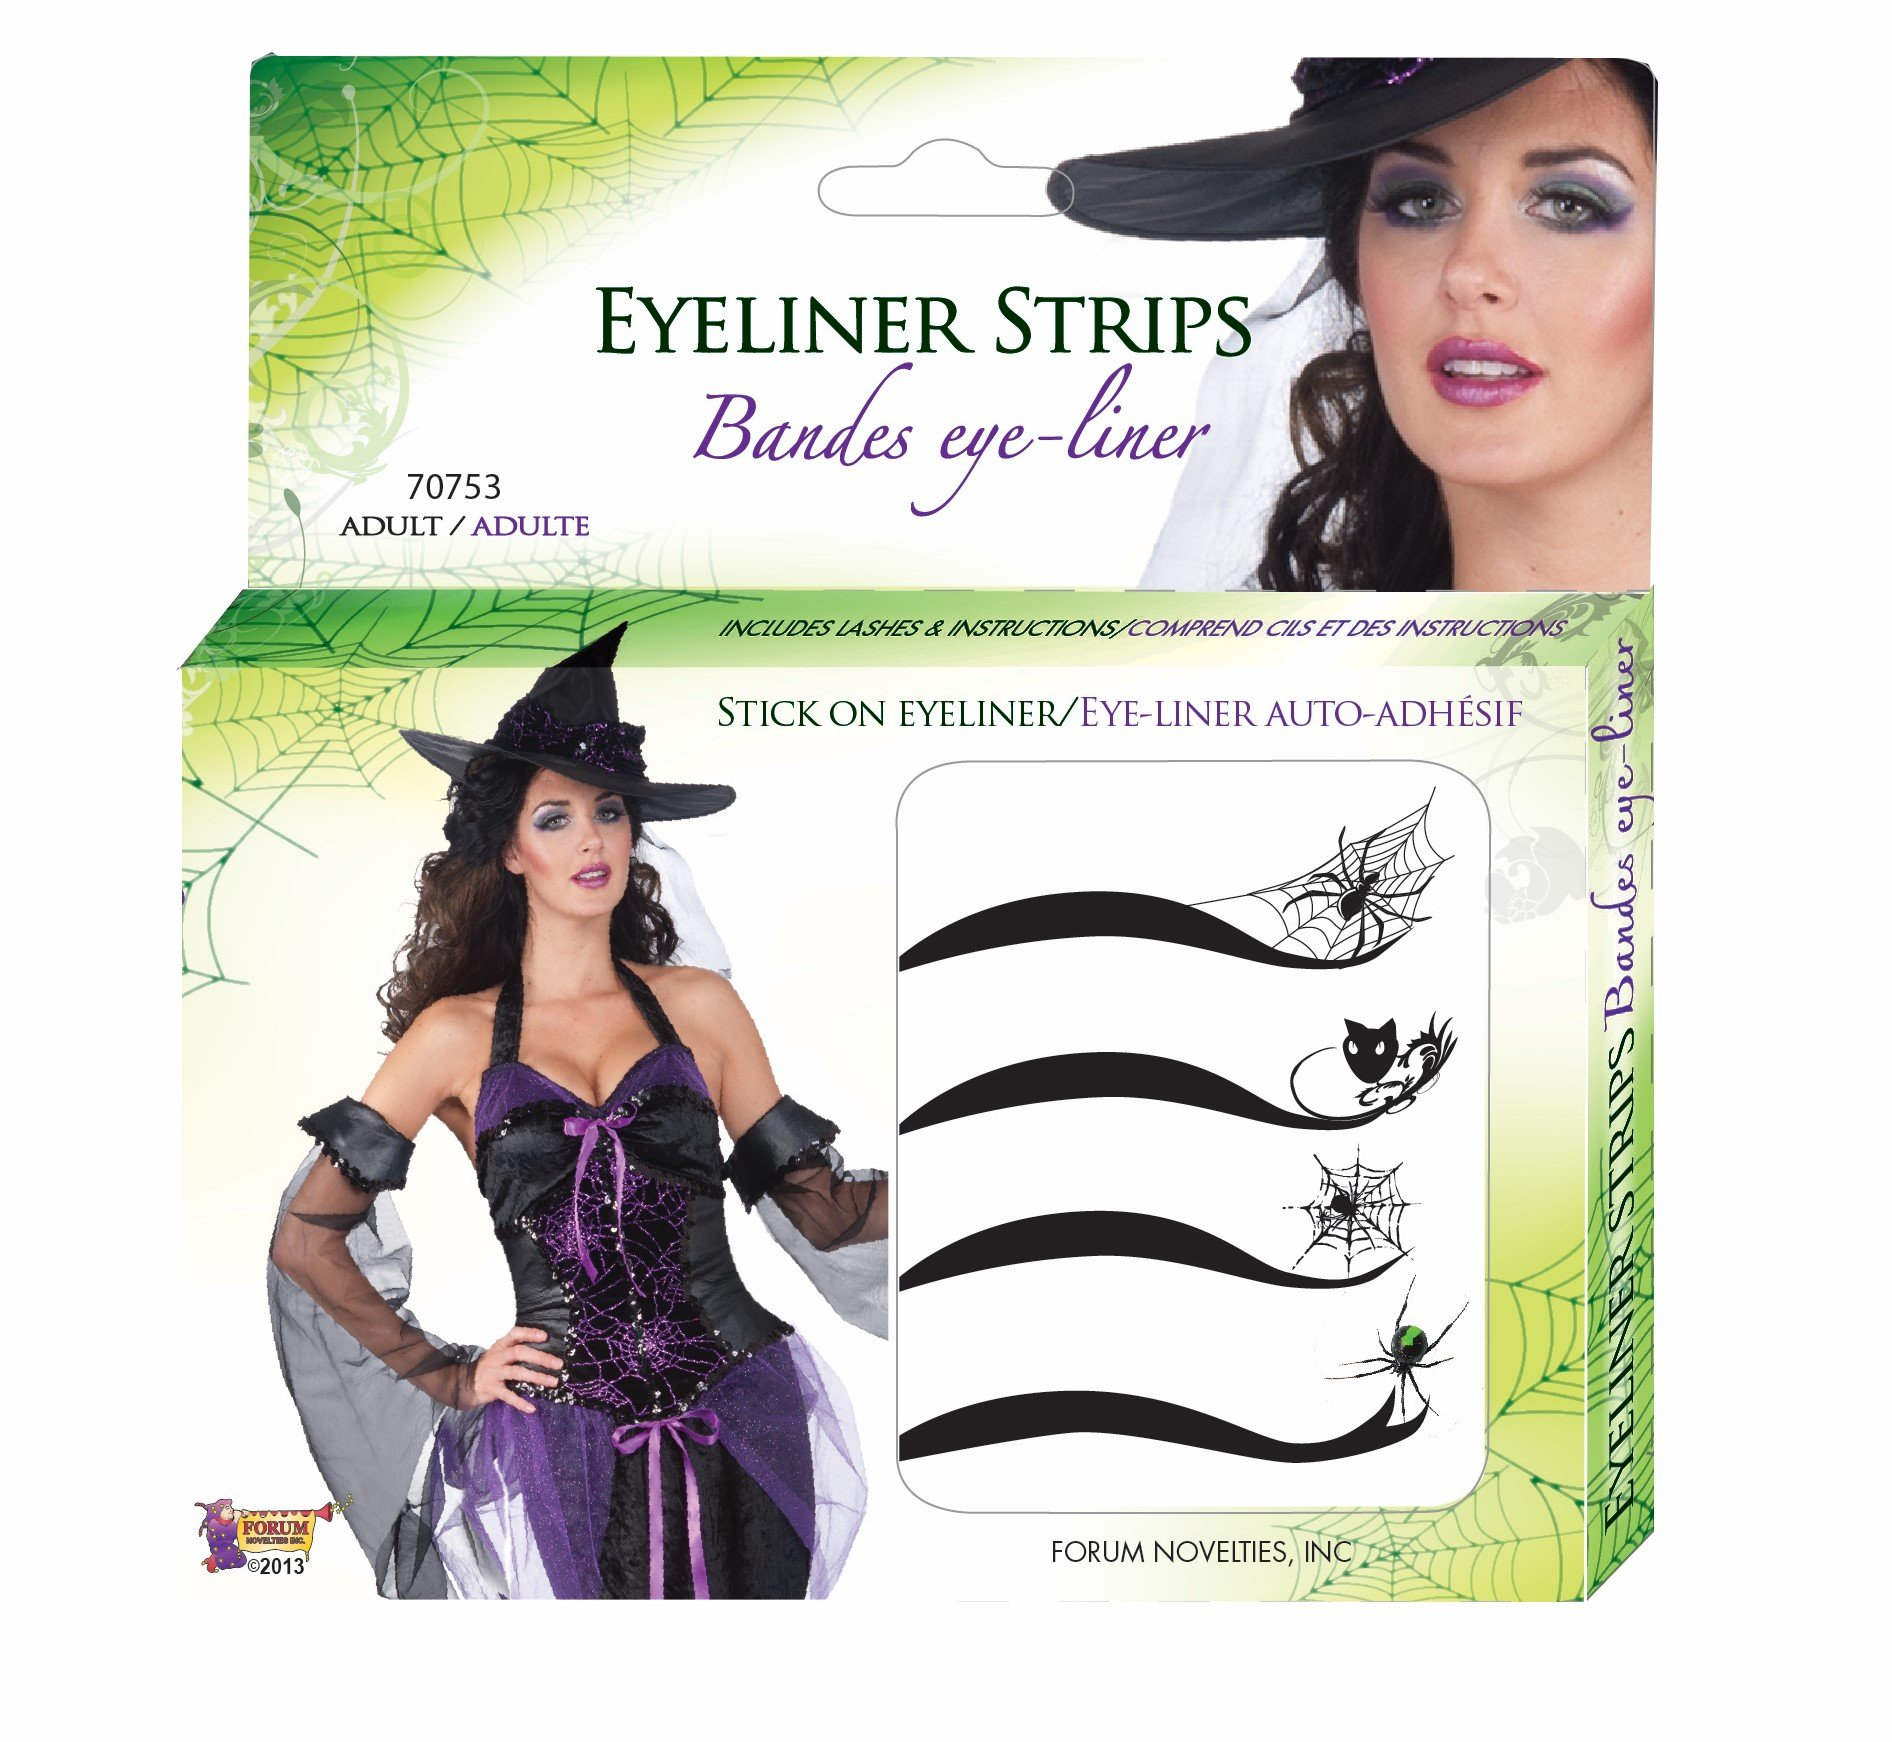 Forum Novelties Women's Spider Web Adhesive Eyeliner Strips Kit, Multi, One Size